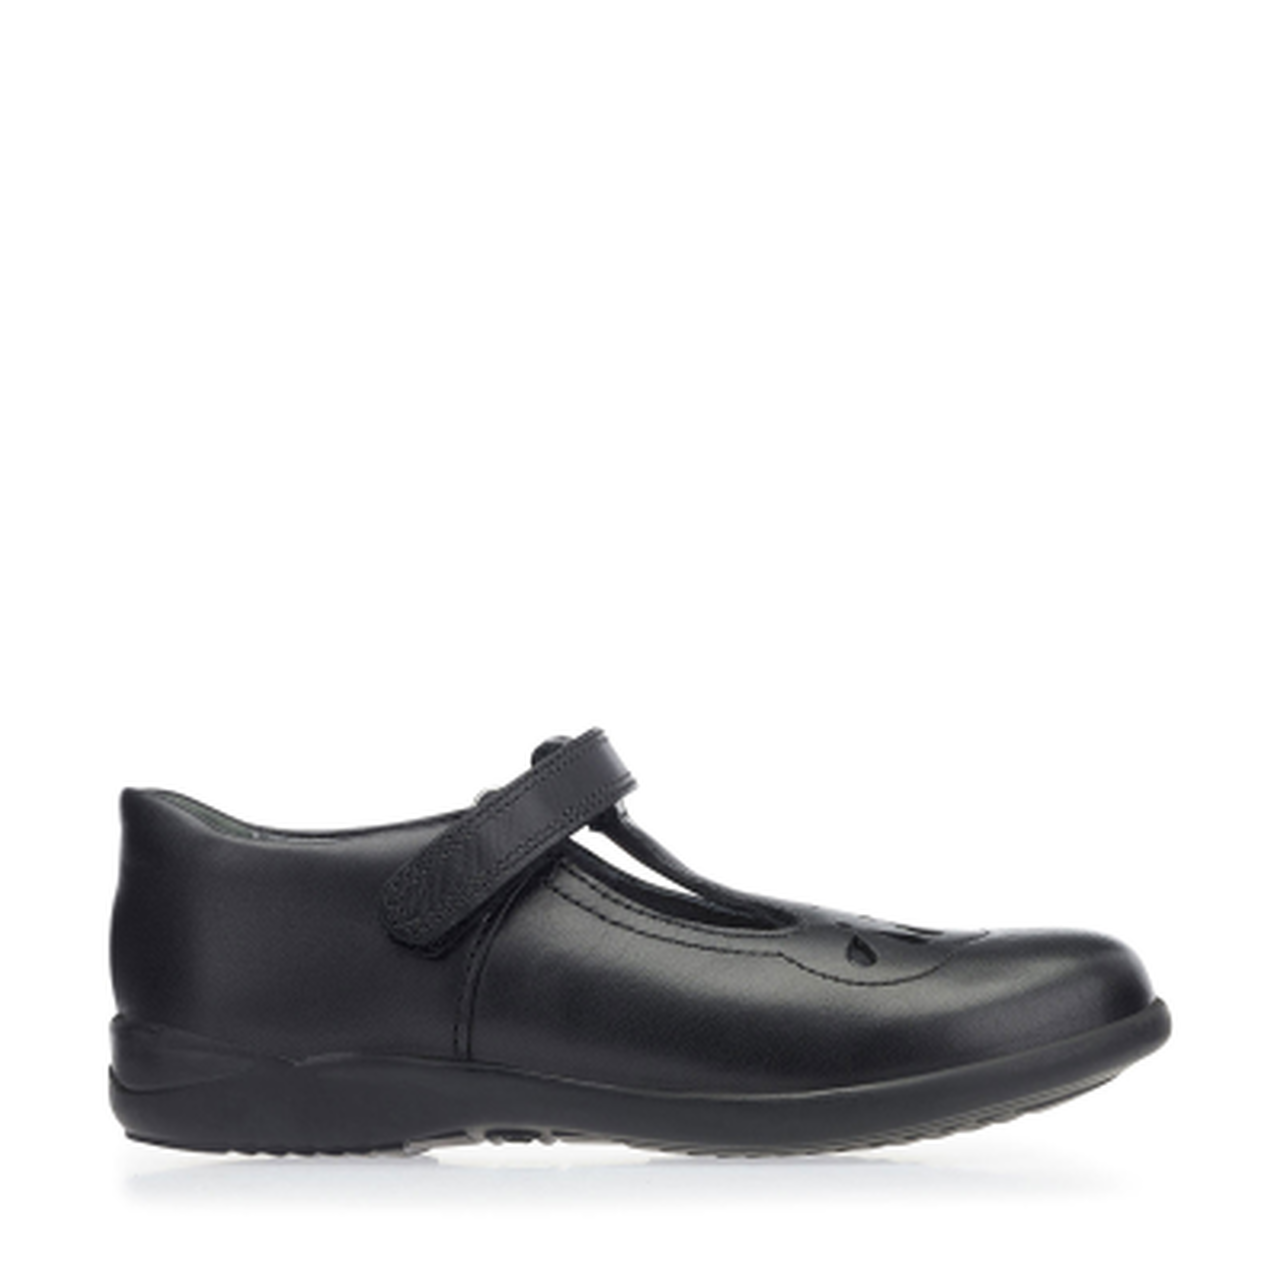 Start-rite Poppy Girls Black Leather Shoe